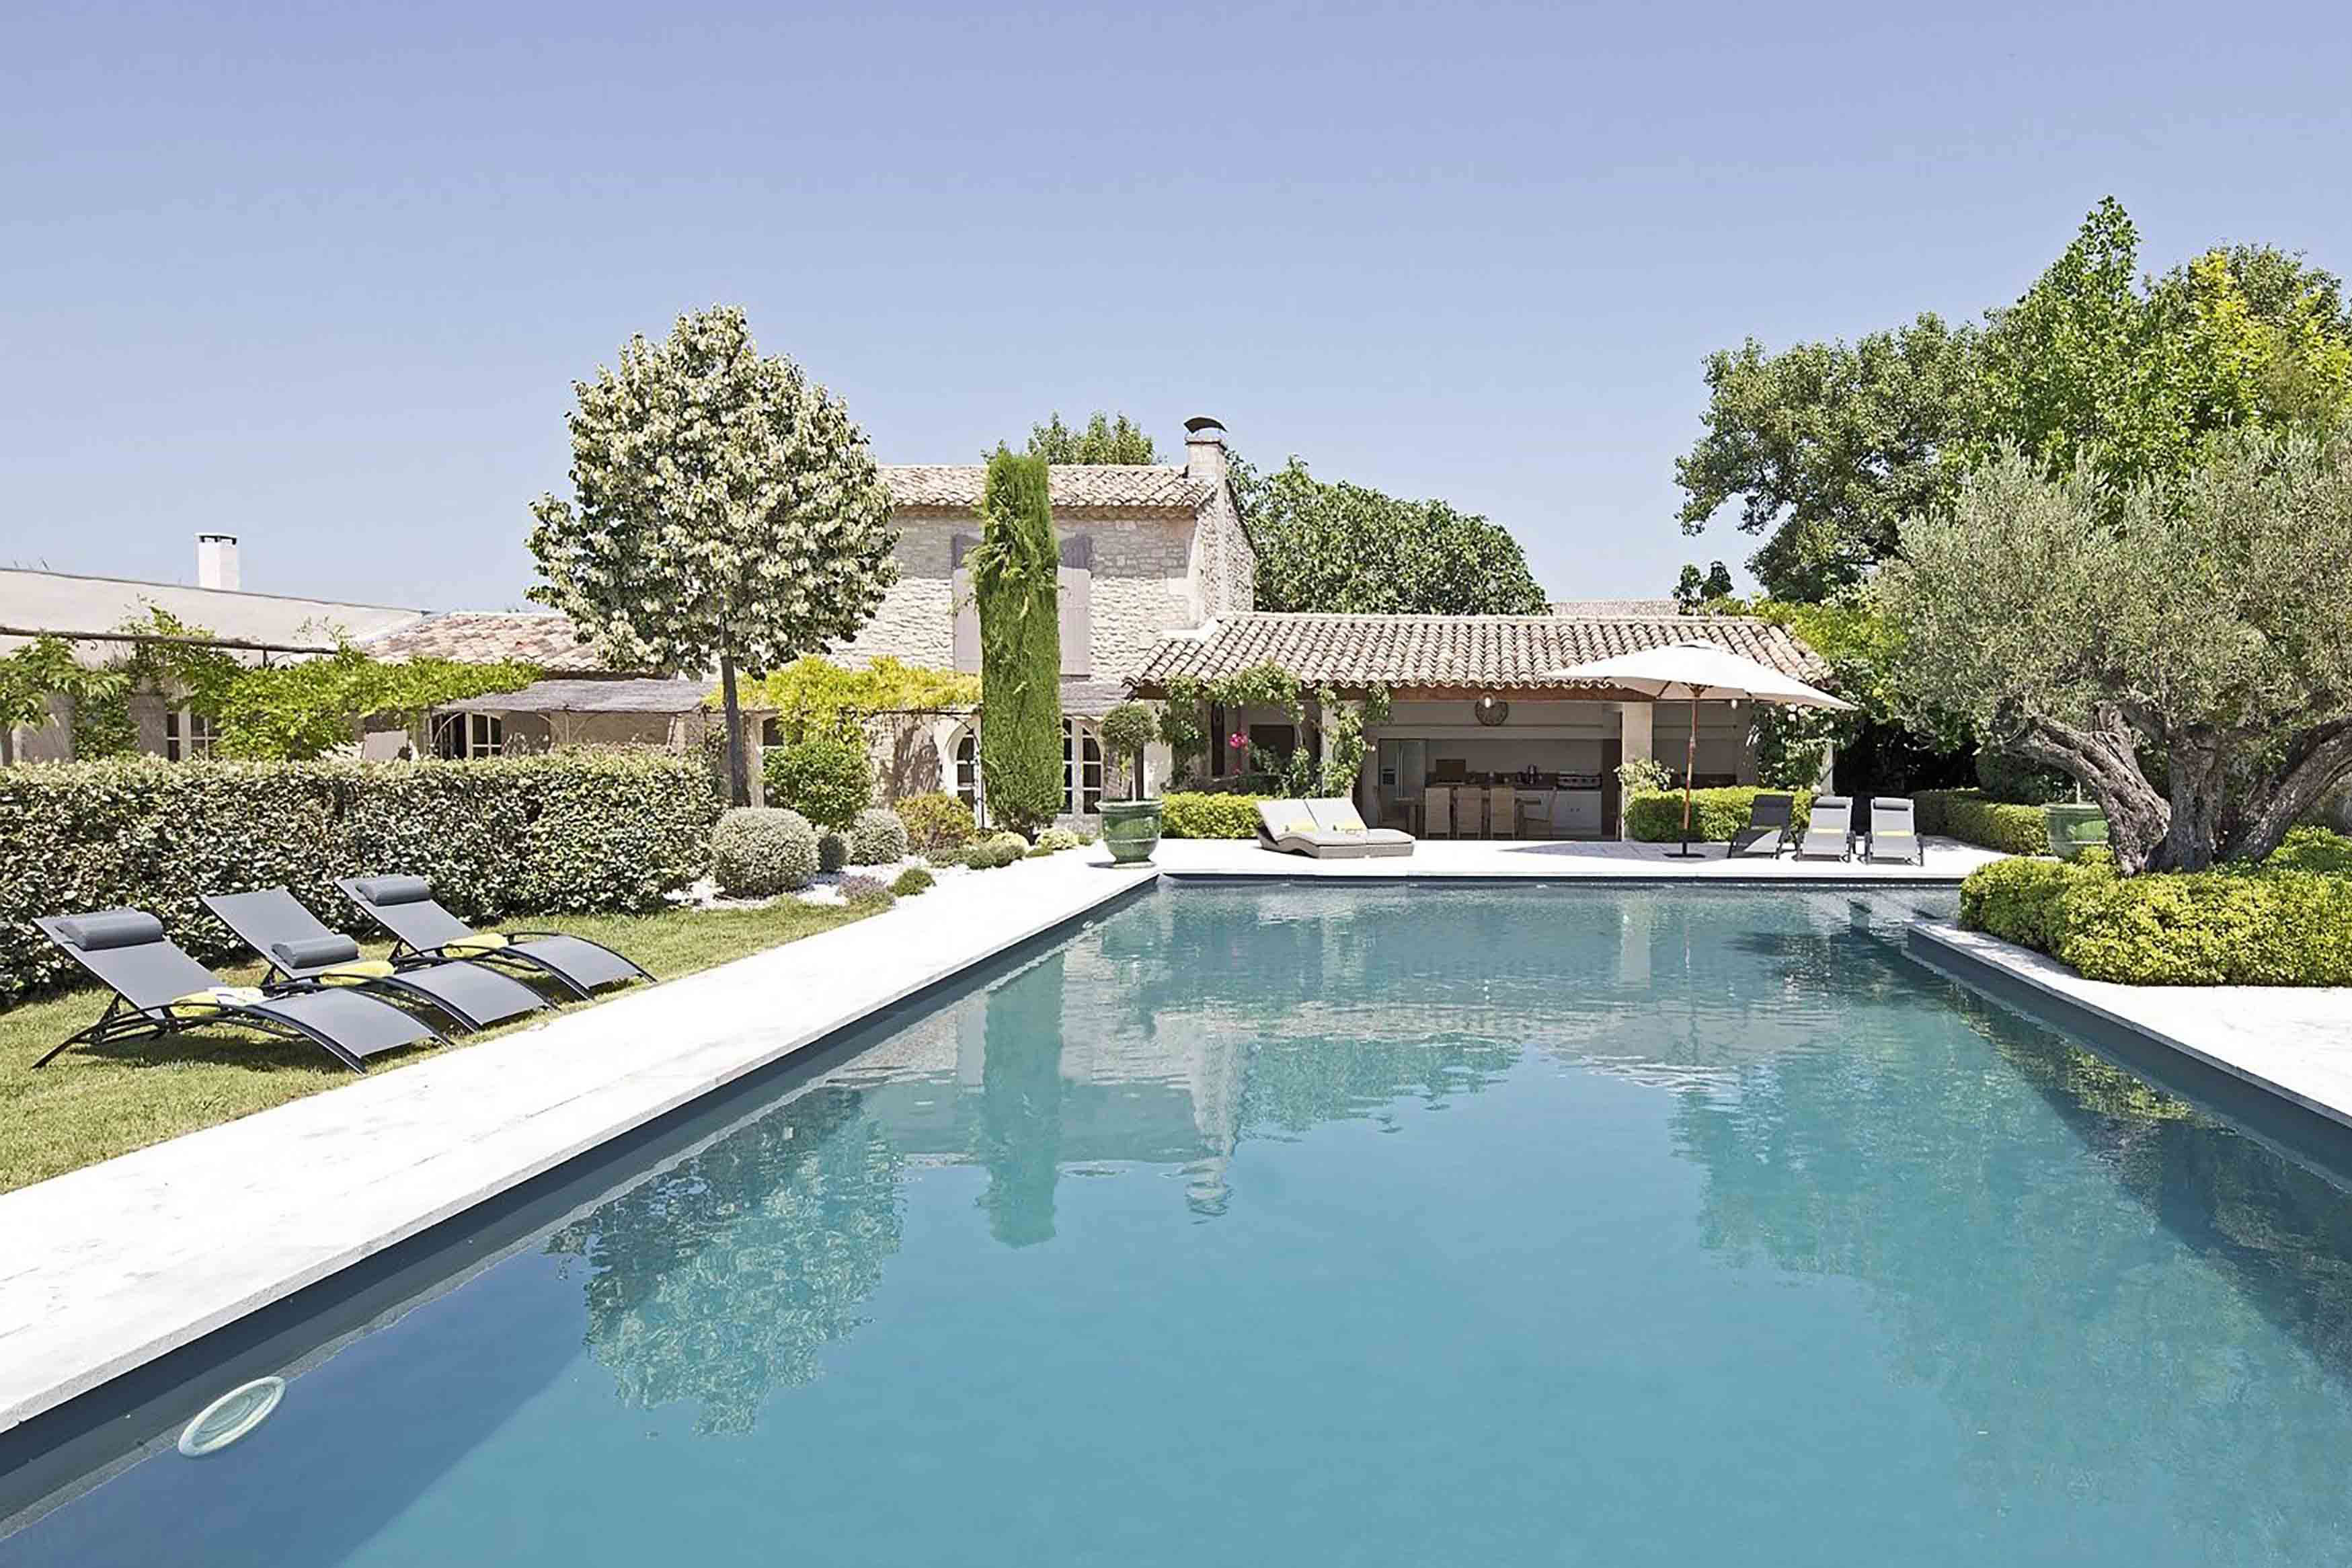 Luxury villas for family holidays | La Lavande, Provence | Mr & Mrs Smith Editorial